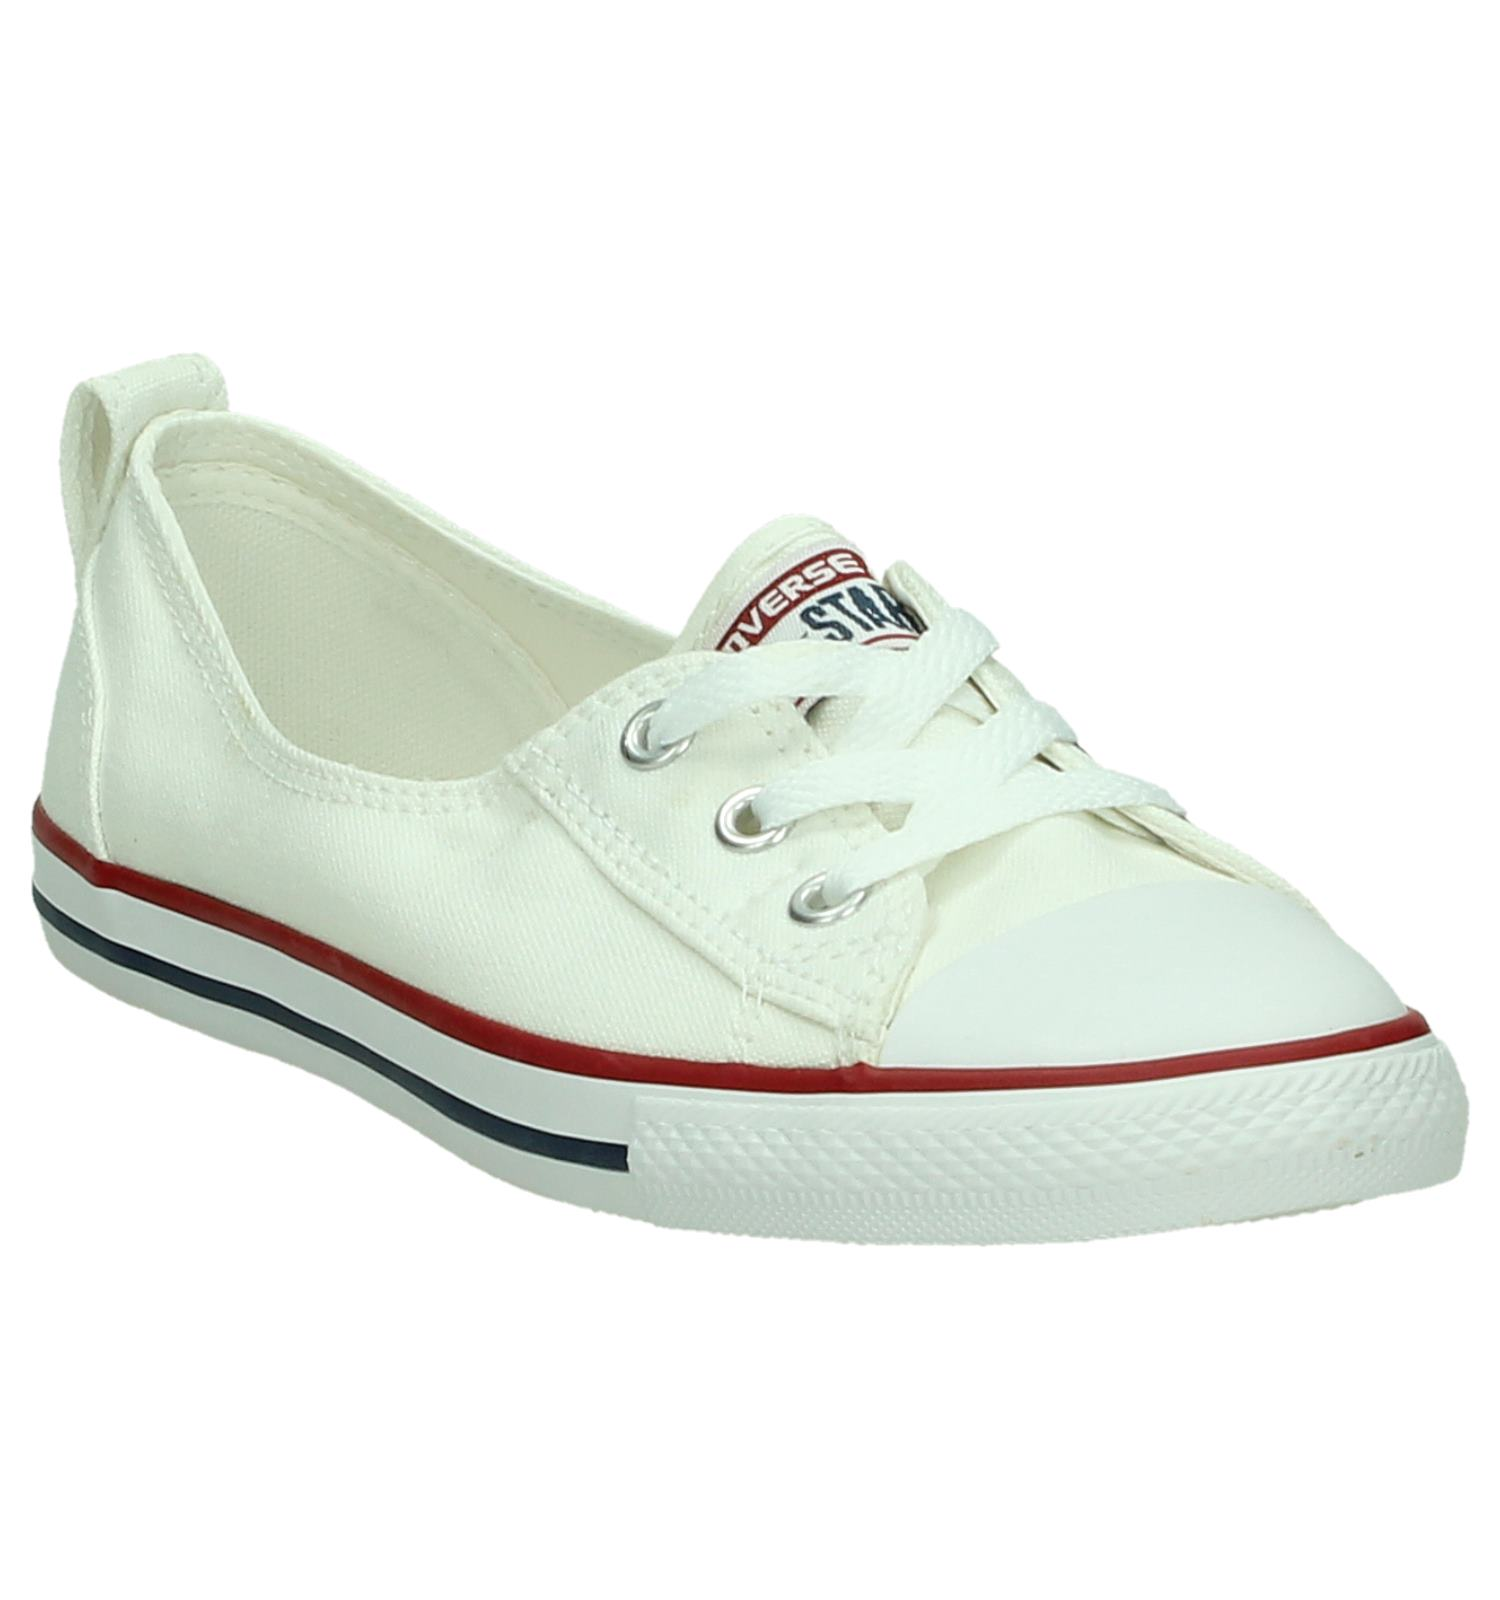 on Witte Ct Ballet All Slip Converse Star Sneakers shtQrdC